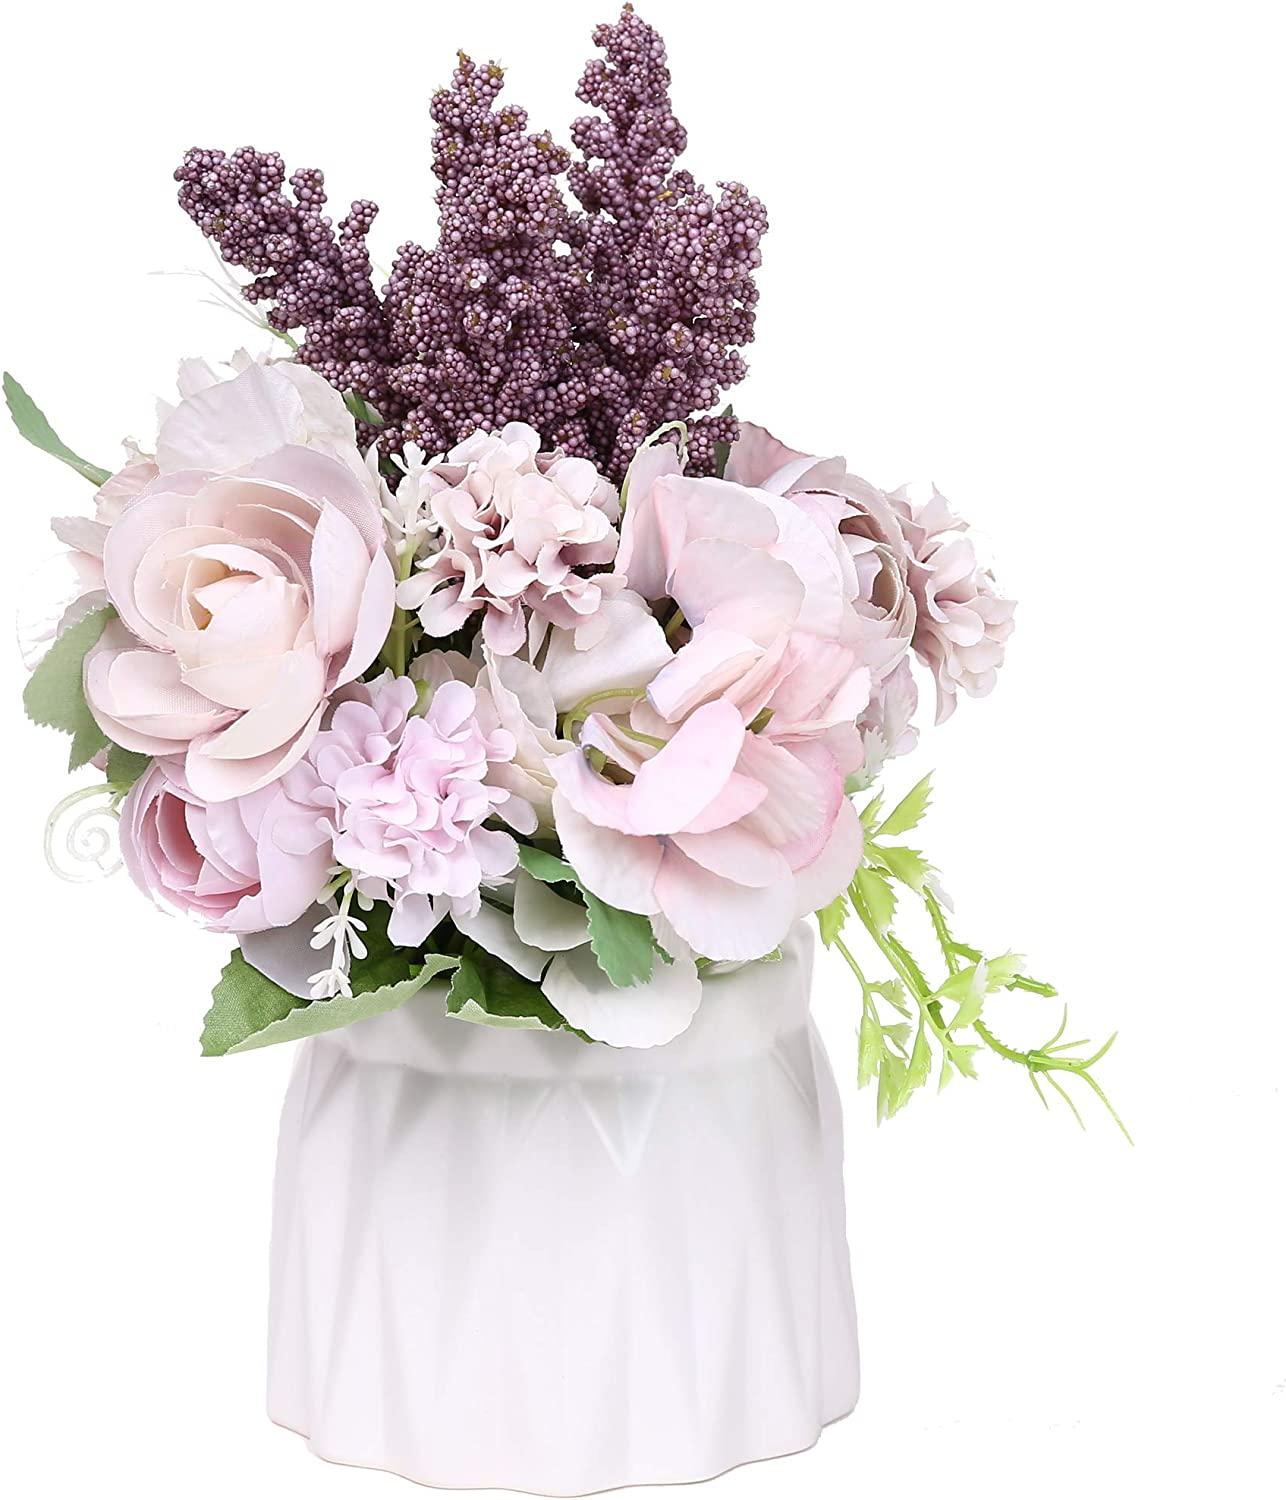 Sonifer Artificial Rose Silk Flower Bouquet Decoration Fake Flower with Ceramic Vase for Home Office Table Wedding (Purple)